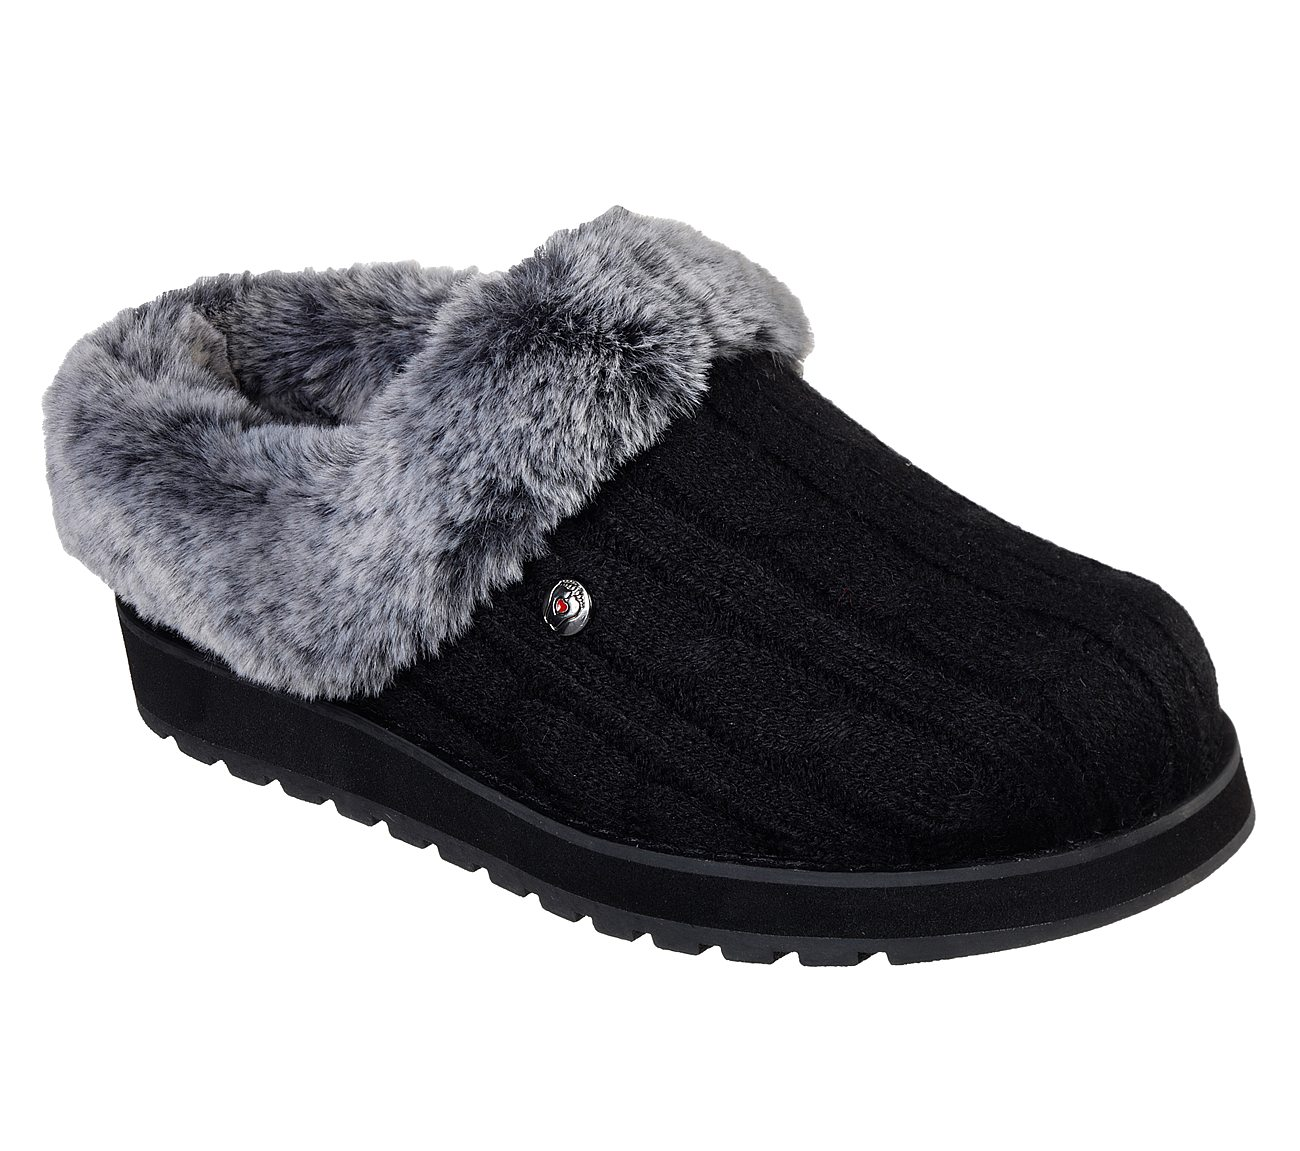 Buy SKECHERS Bobs Keepsakes Ice Storm Bobs Shoes